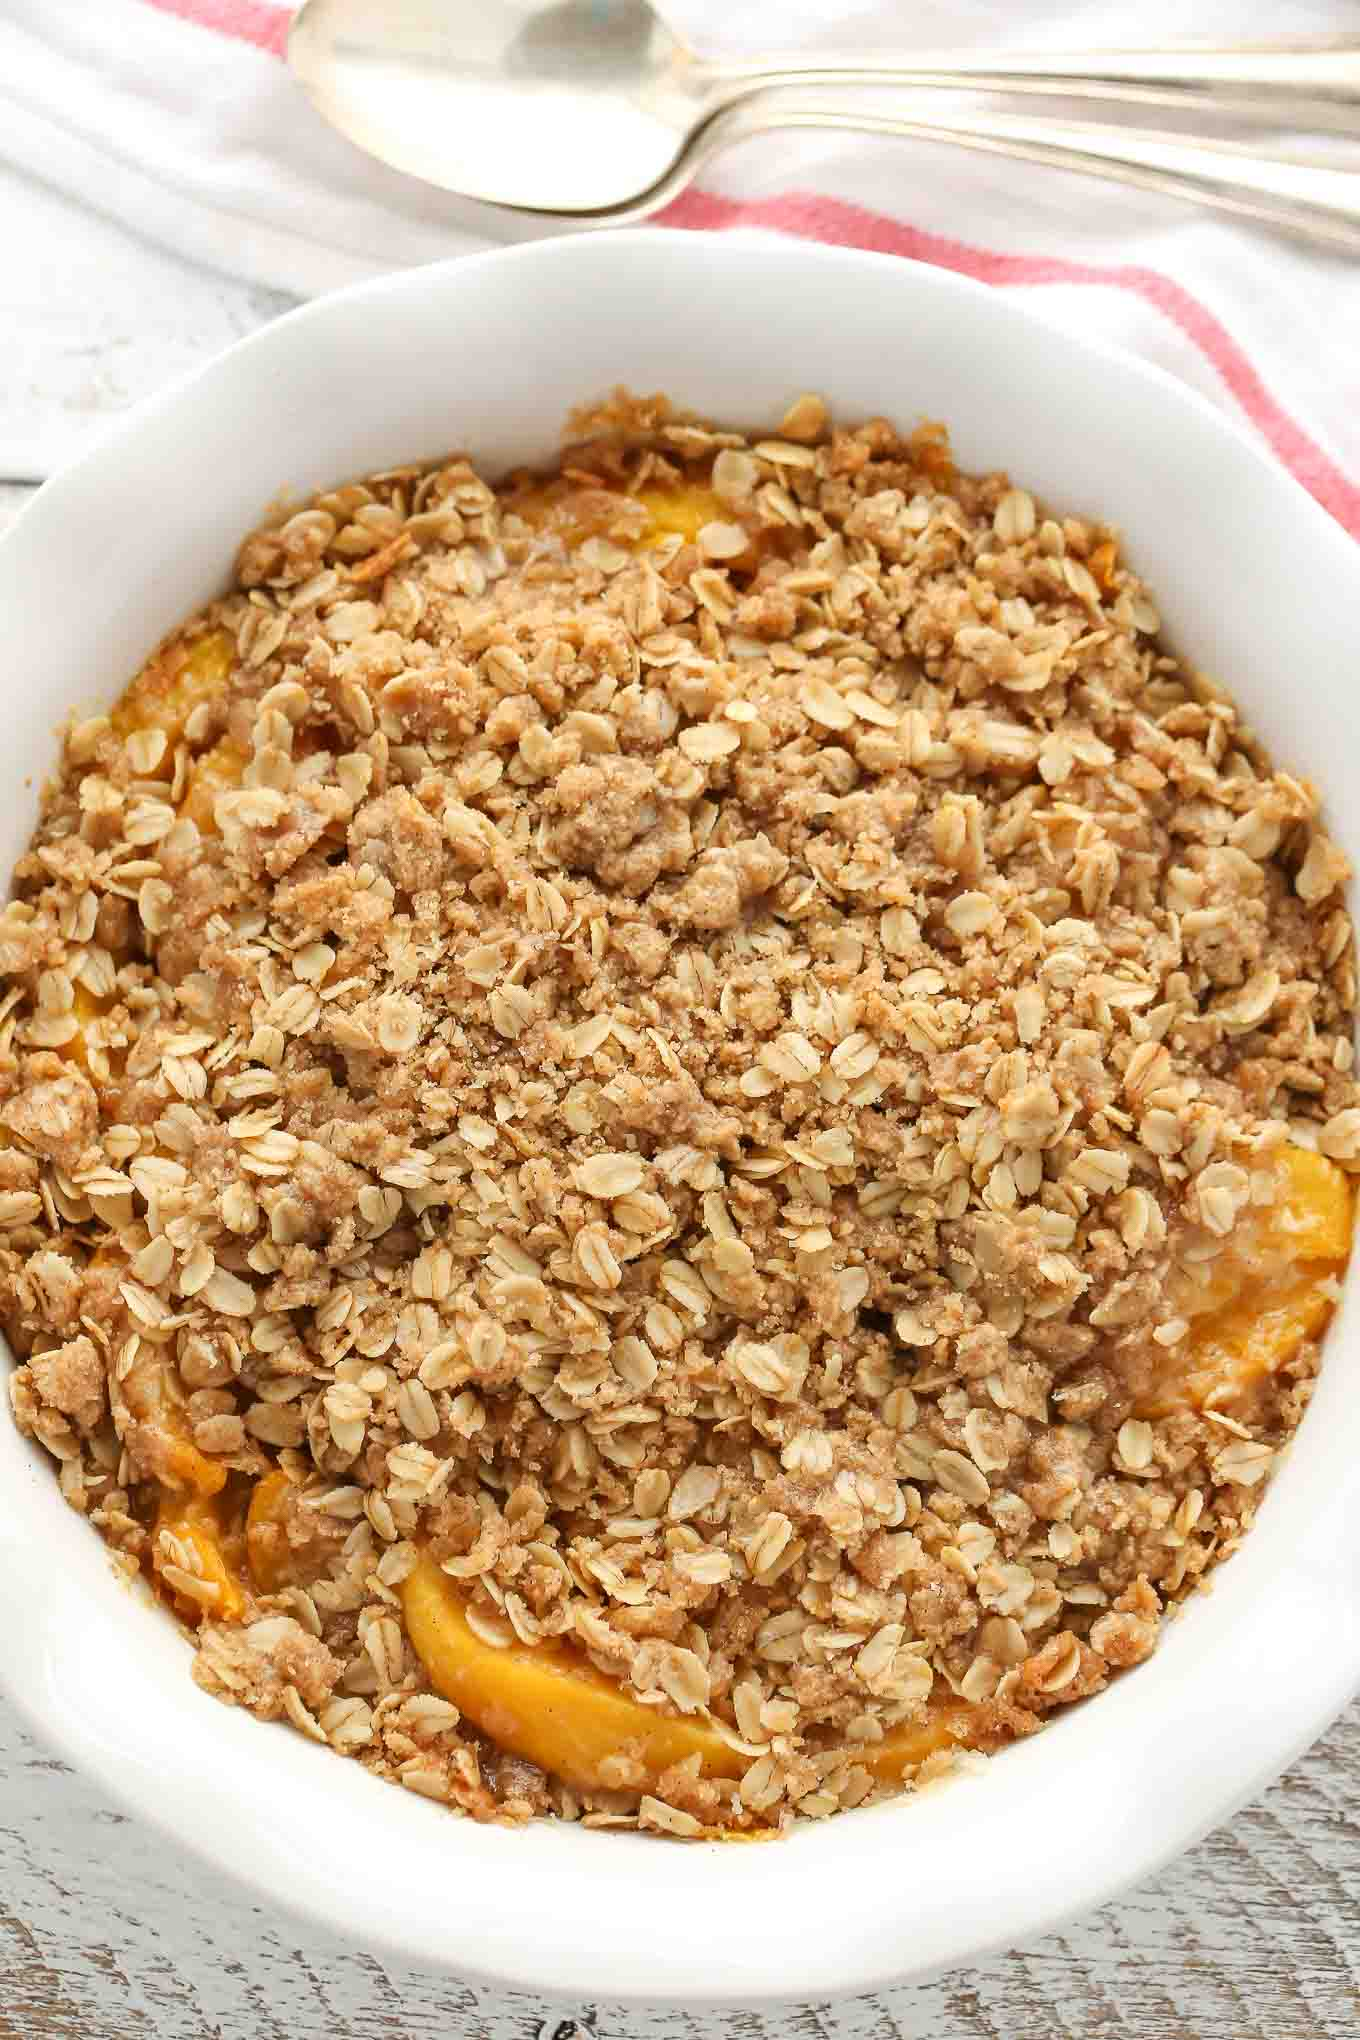 An easy Peach Crisp made with fresh, juicy peaches and a delicious crispy topping.